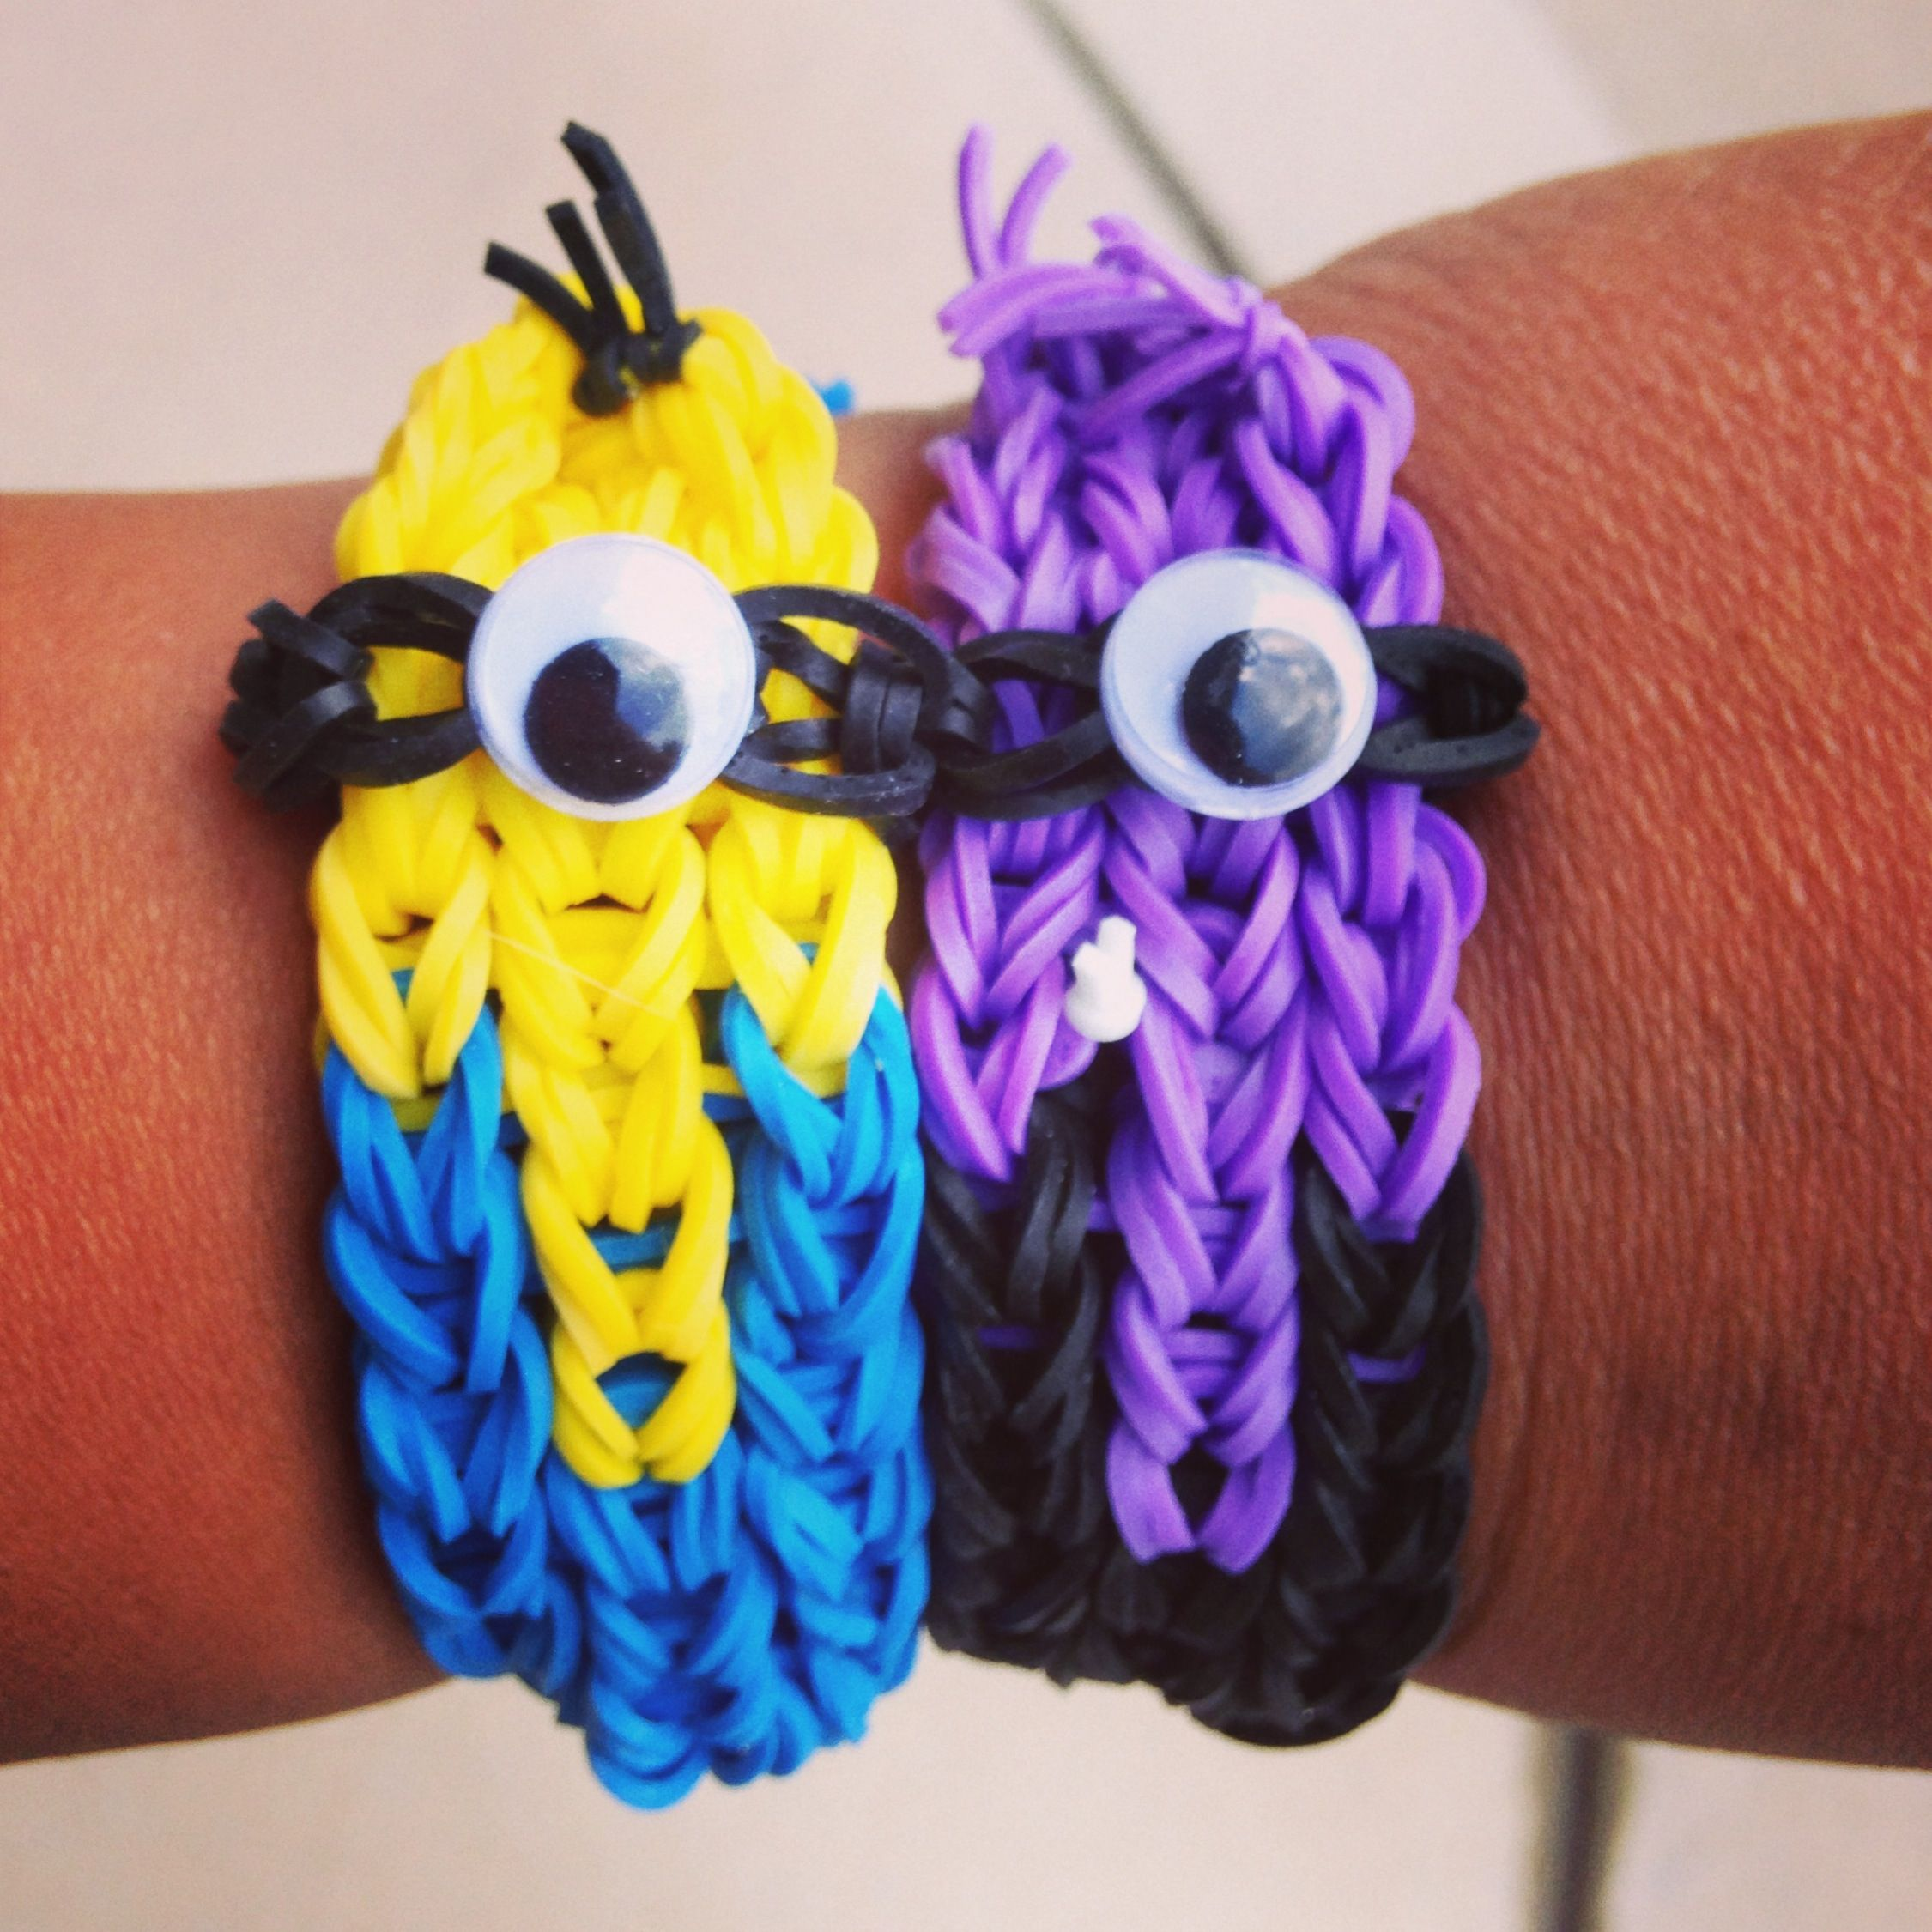 Minion rainbow loom bracelets www.bandzofbrotherz.weebly.com.      They look weird but it looks like it would be fun to make!